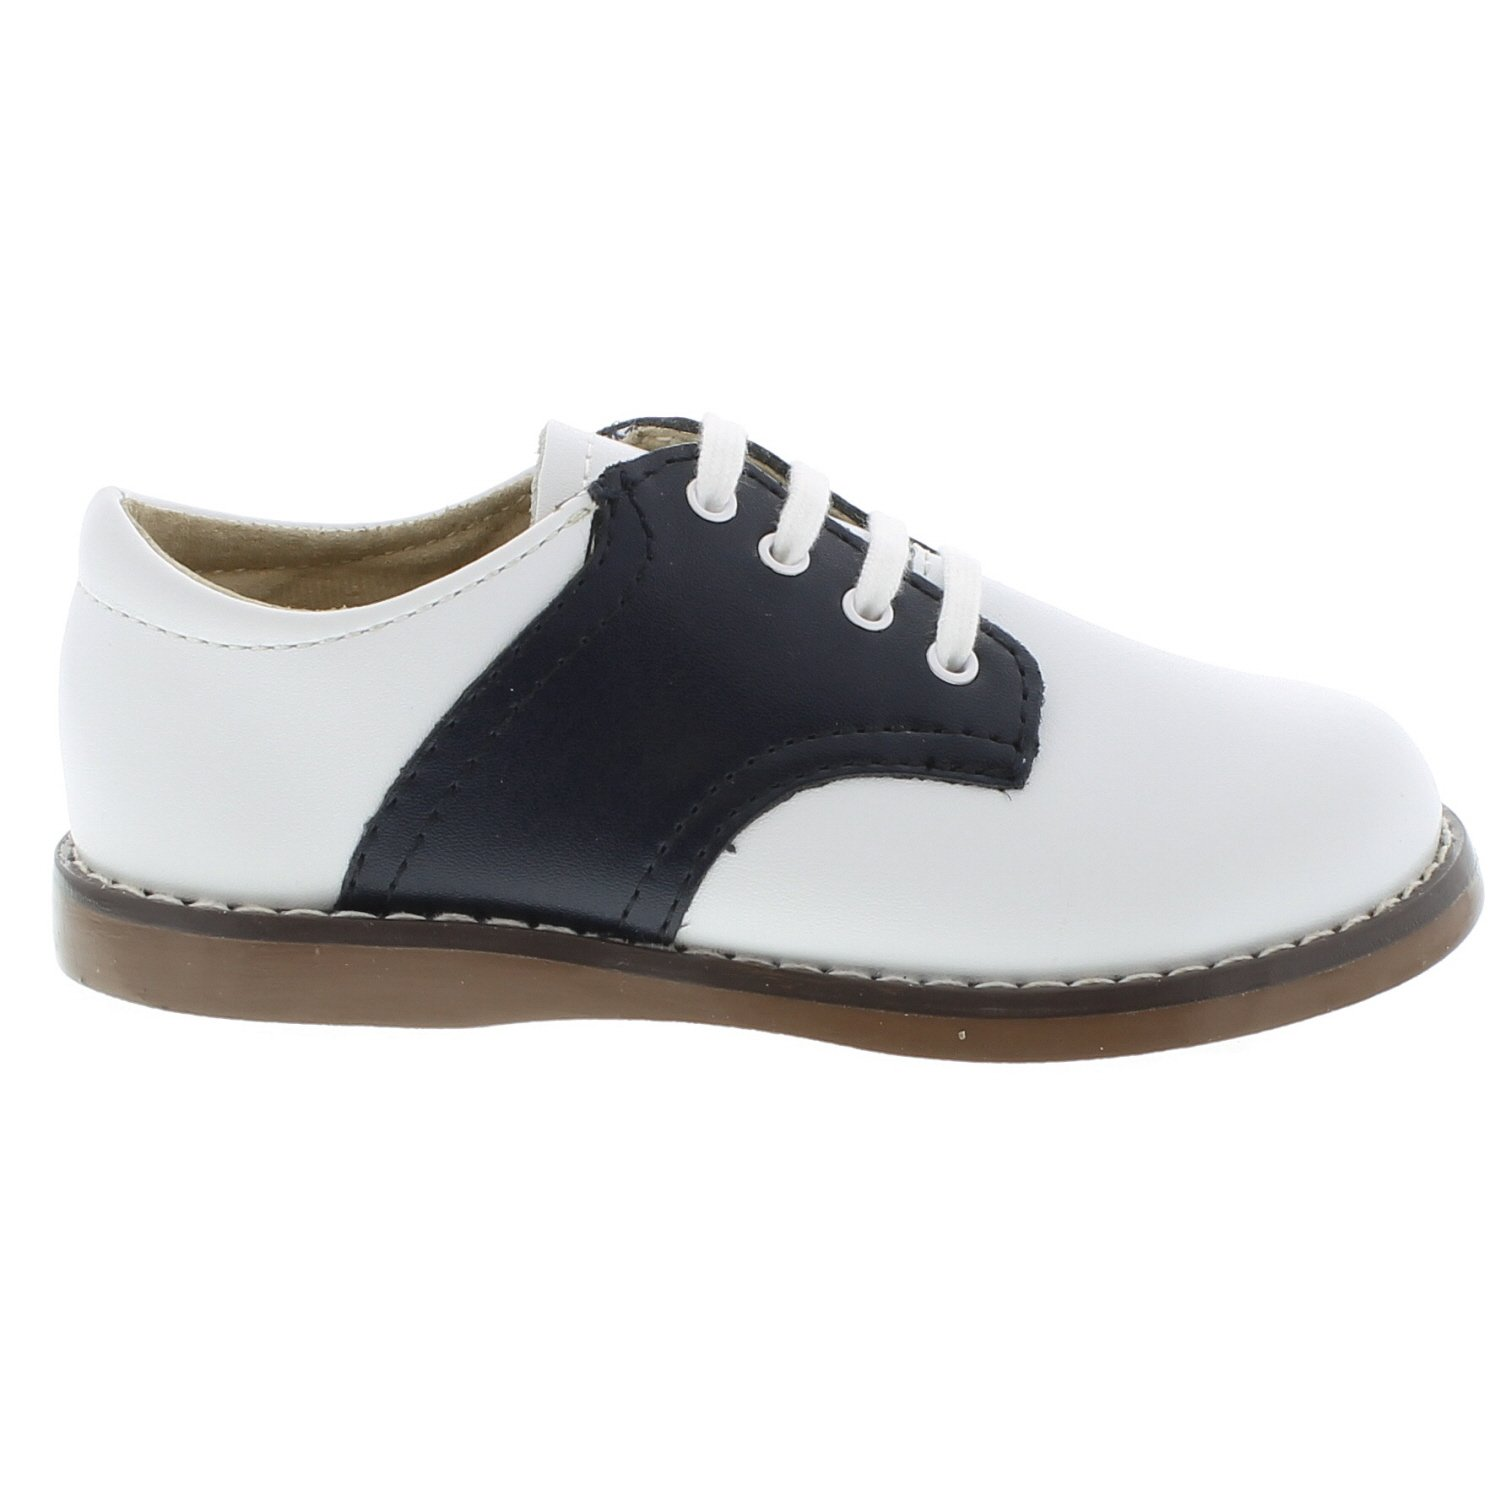 FOOTMATES Cheer Laceup Saddle White/Navy - 8401/13 Little Kid M/W by FOOTMATES (Image #2)